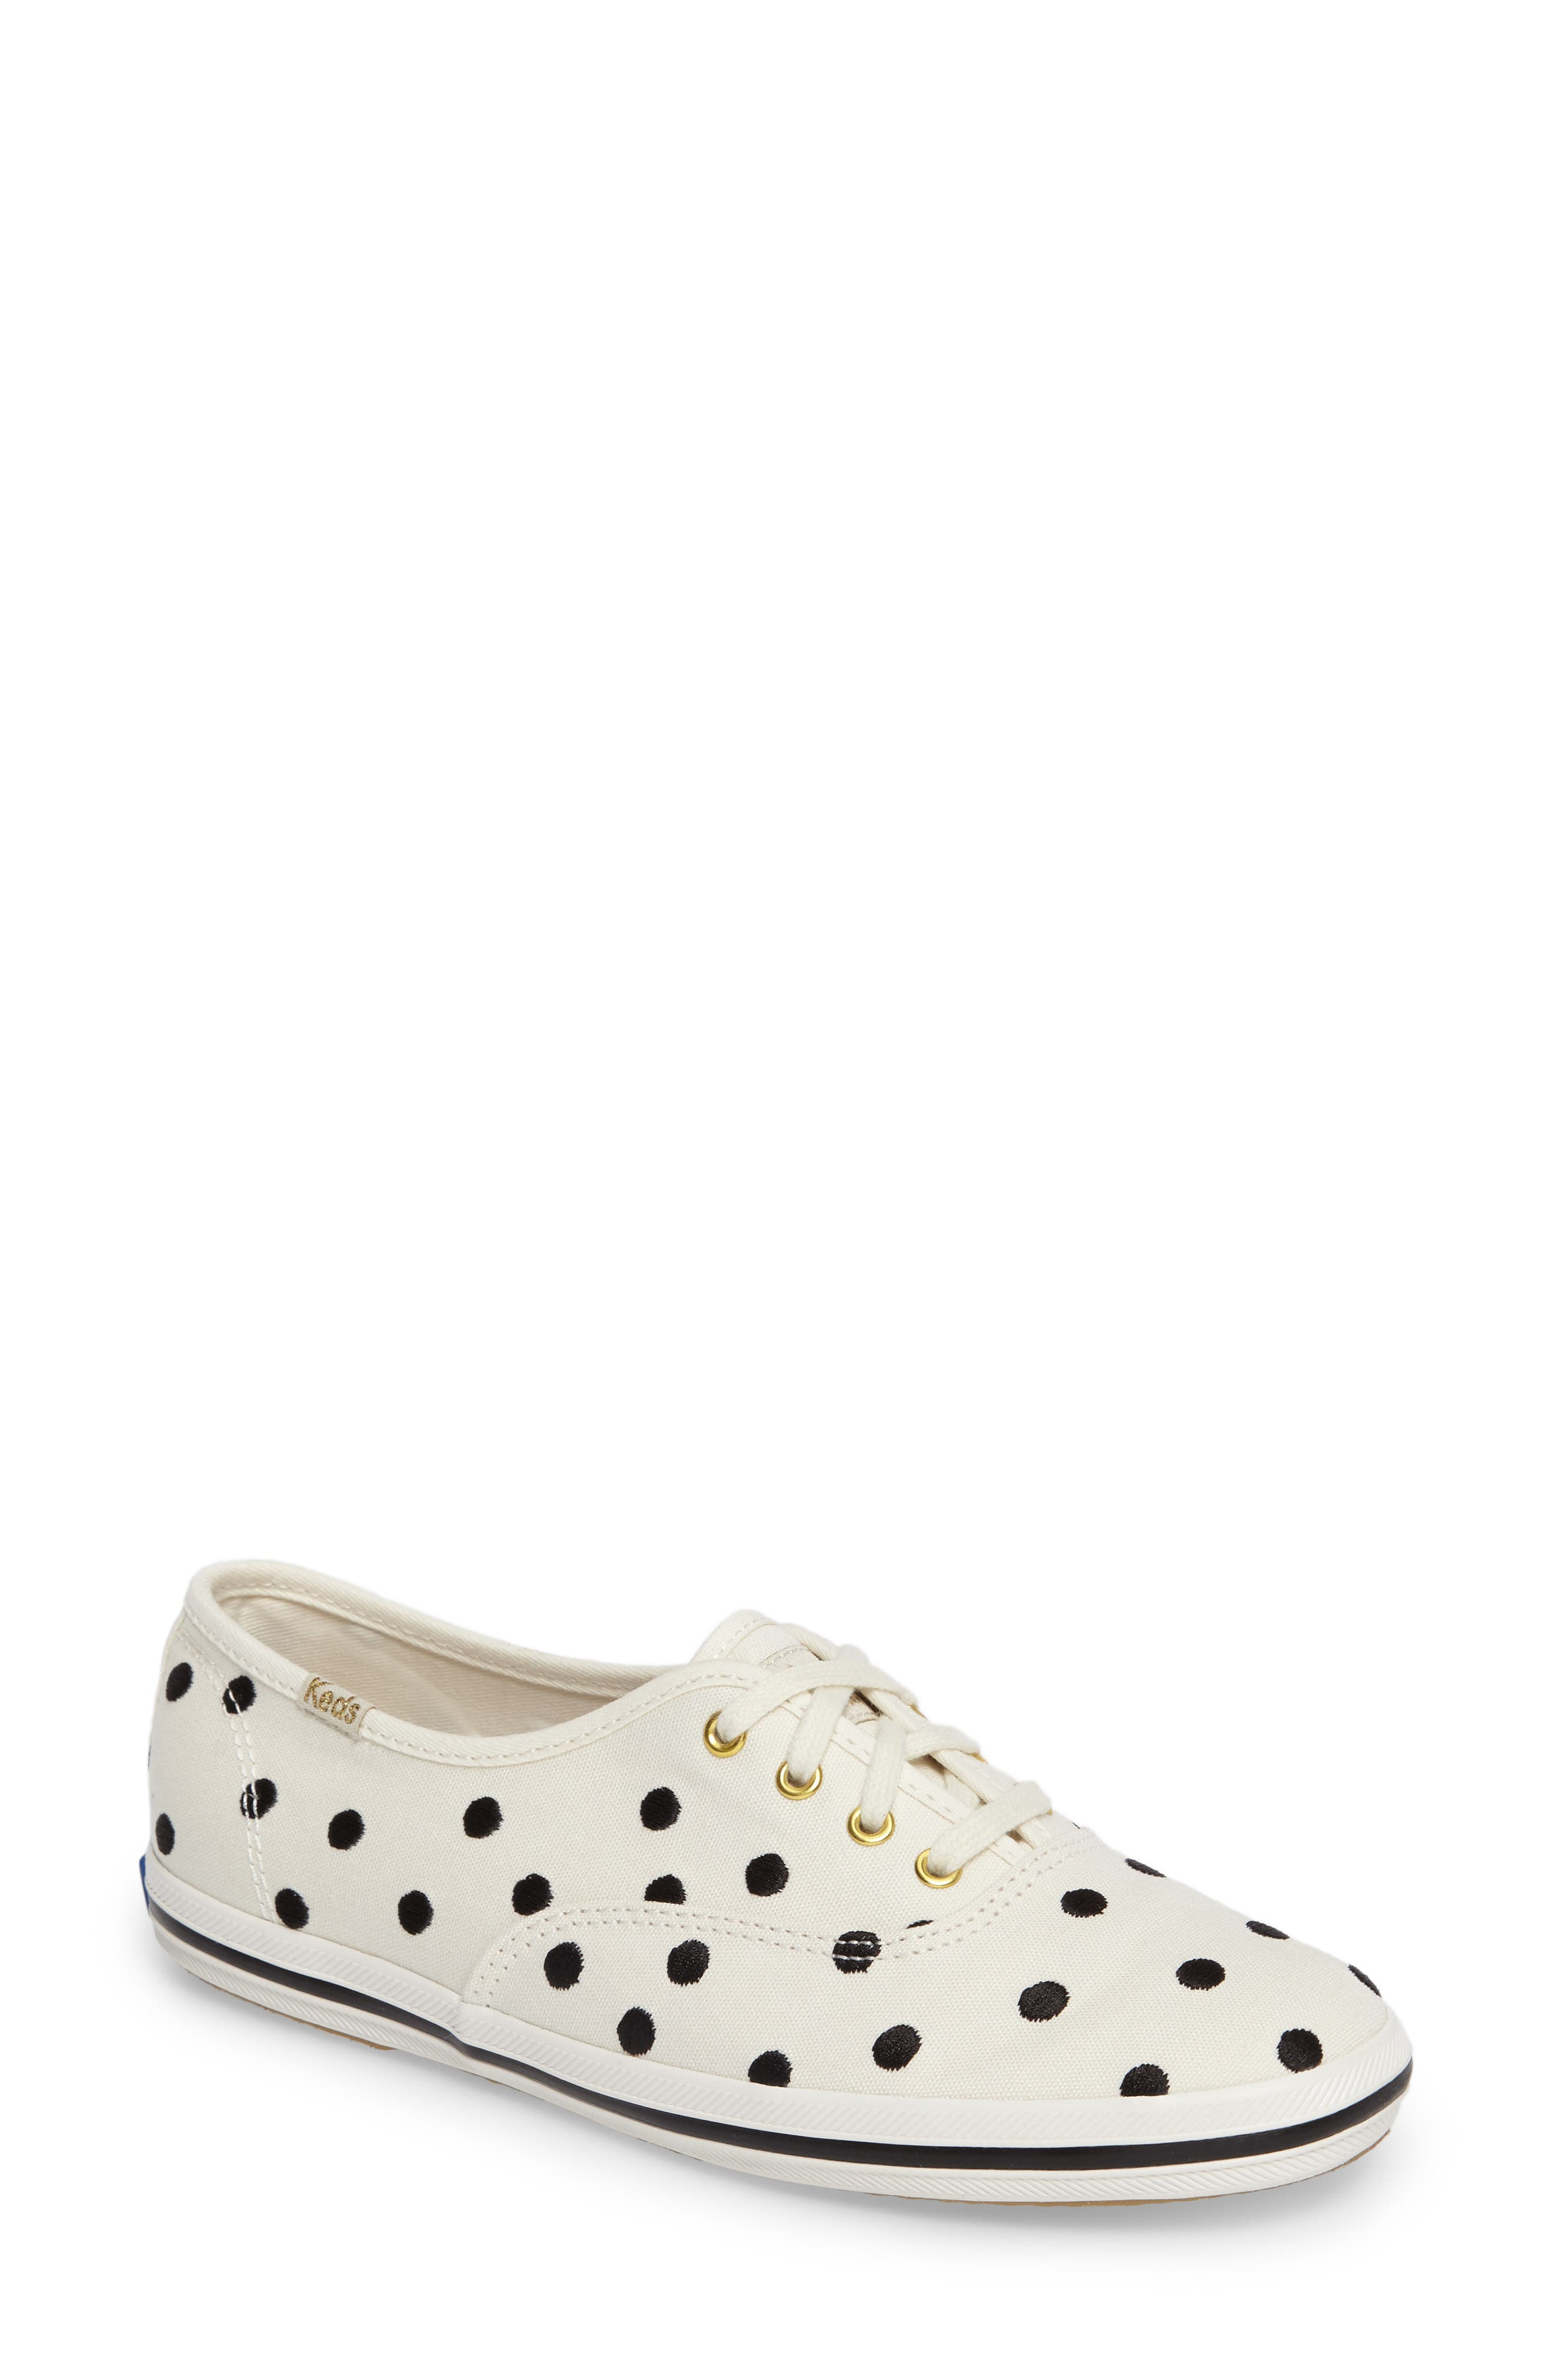 Keds<sup>®</sup> x kate spade new york champion sneaker,                             Main thumbnail 2, color,